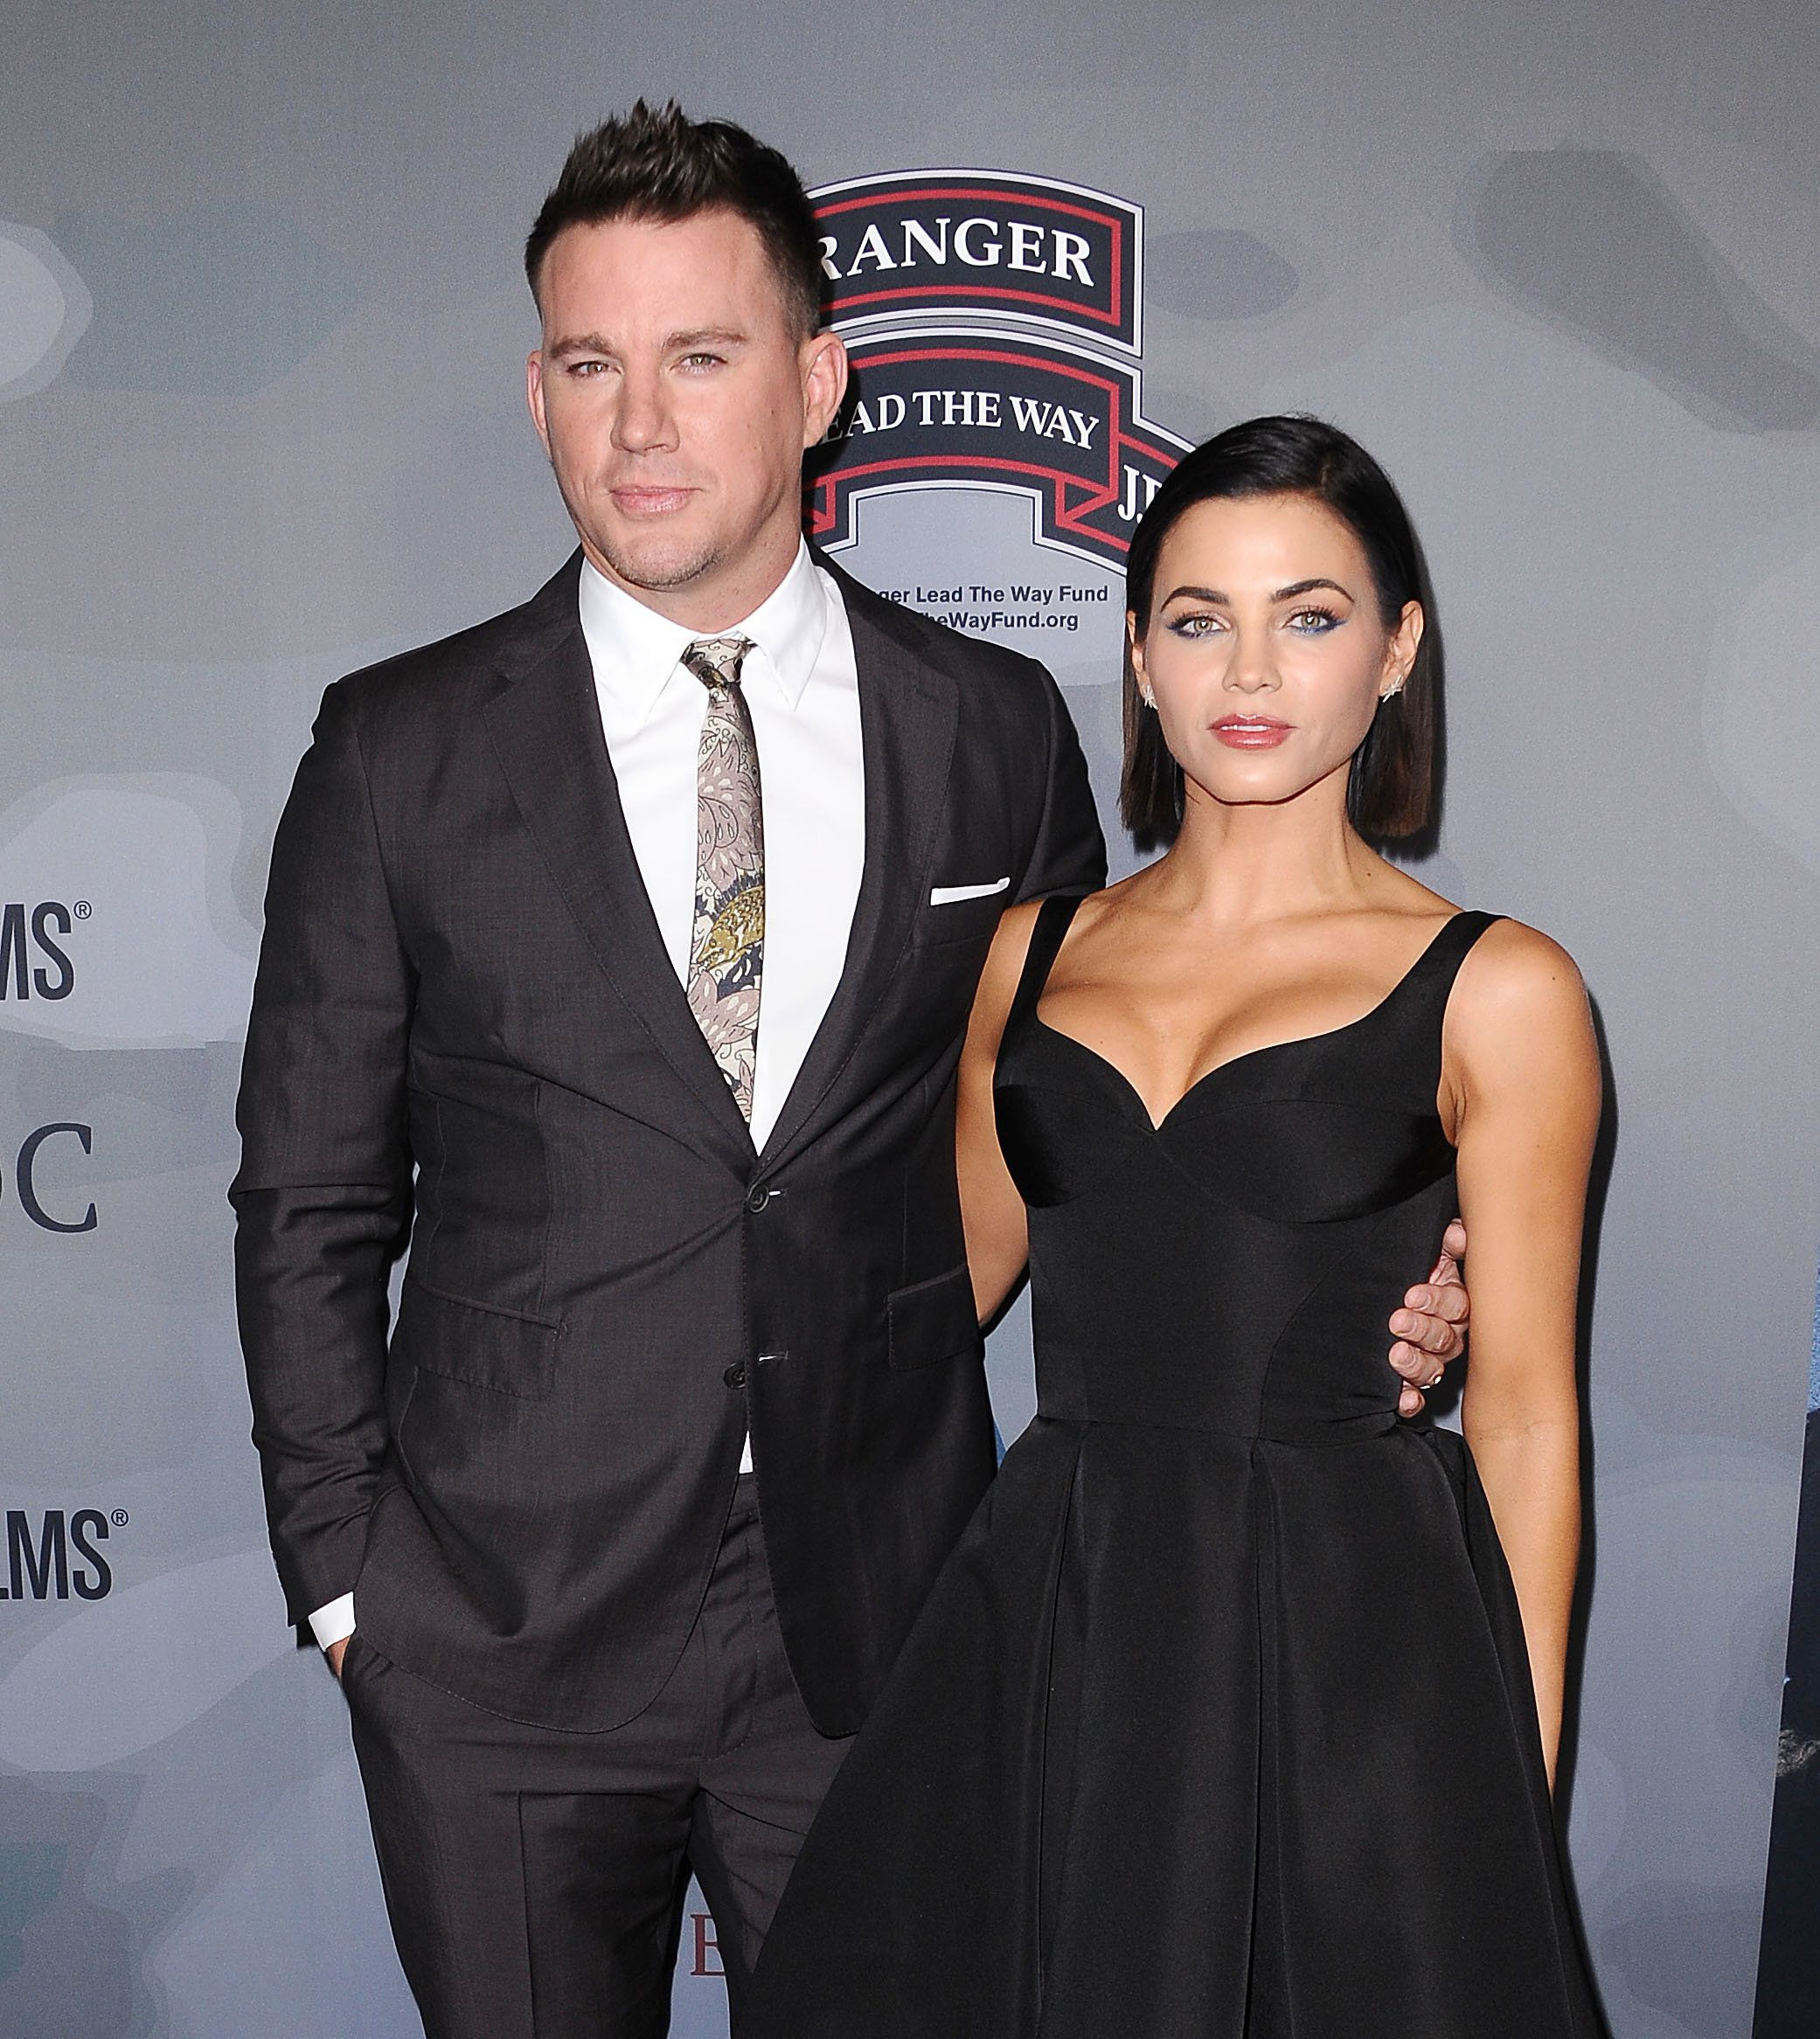 Channing Tatum And Jenna Dewan Announce Split After Nine Years Of